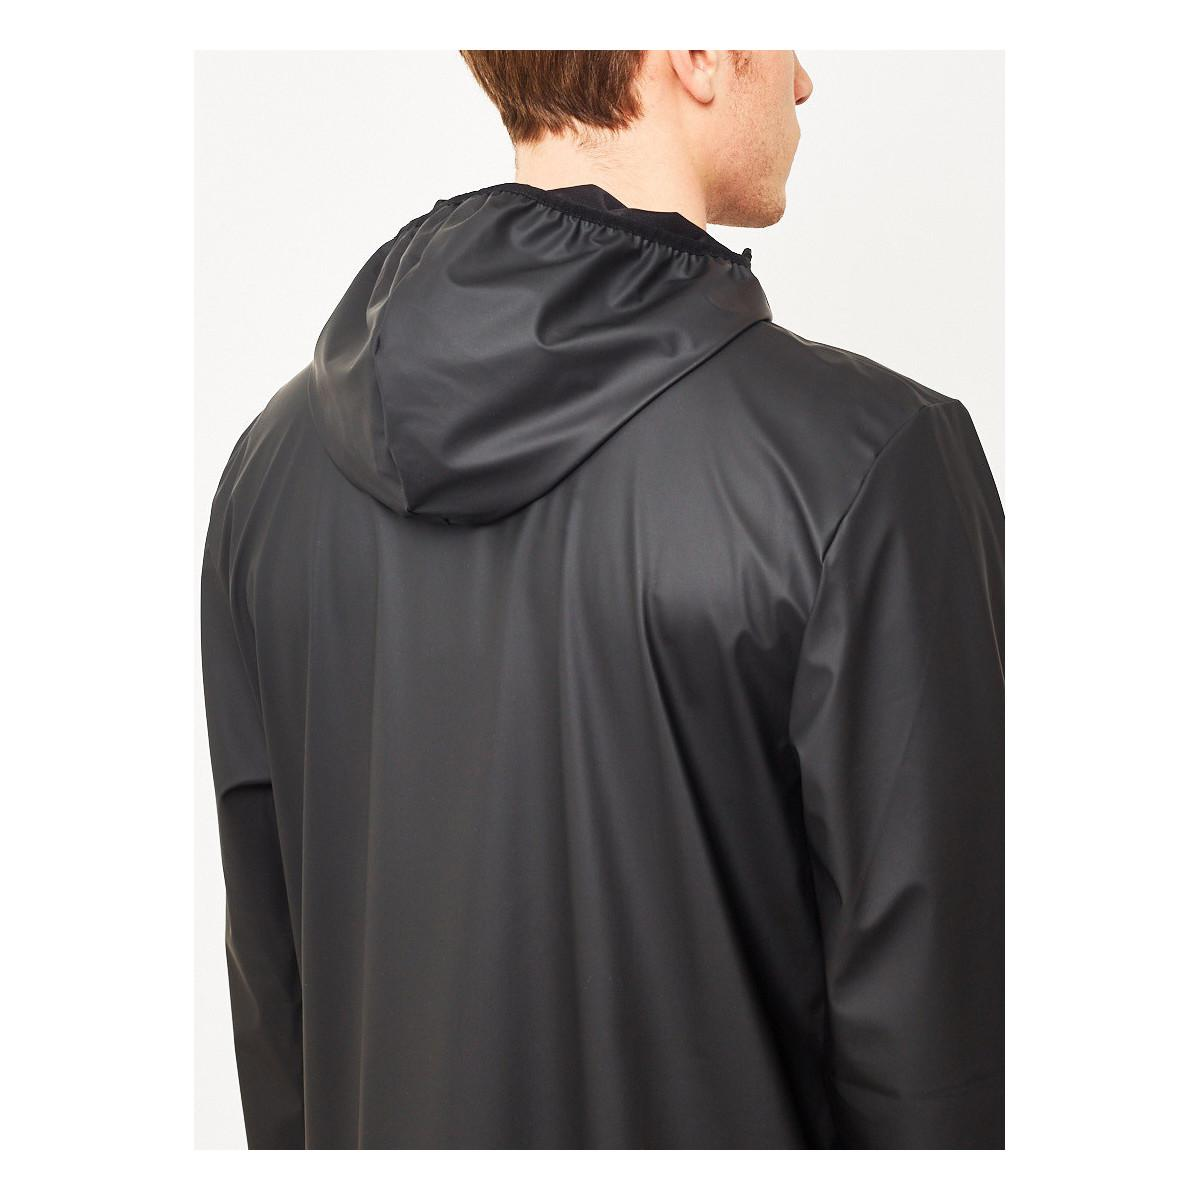 Rains Base Jacket Long Black Men's Windbreakers In Black for Men